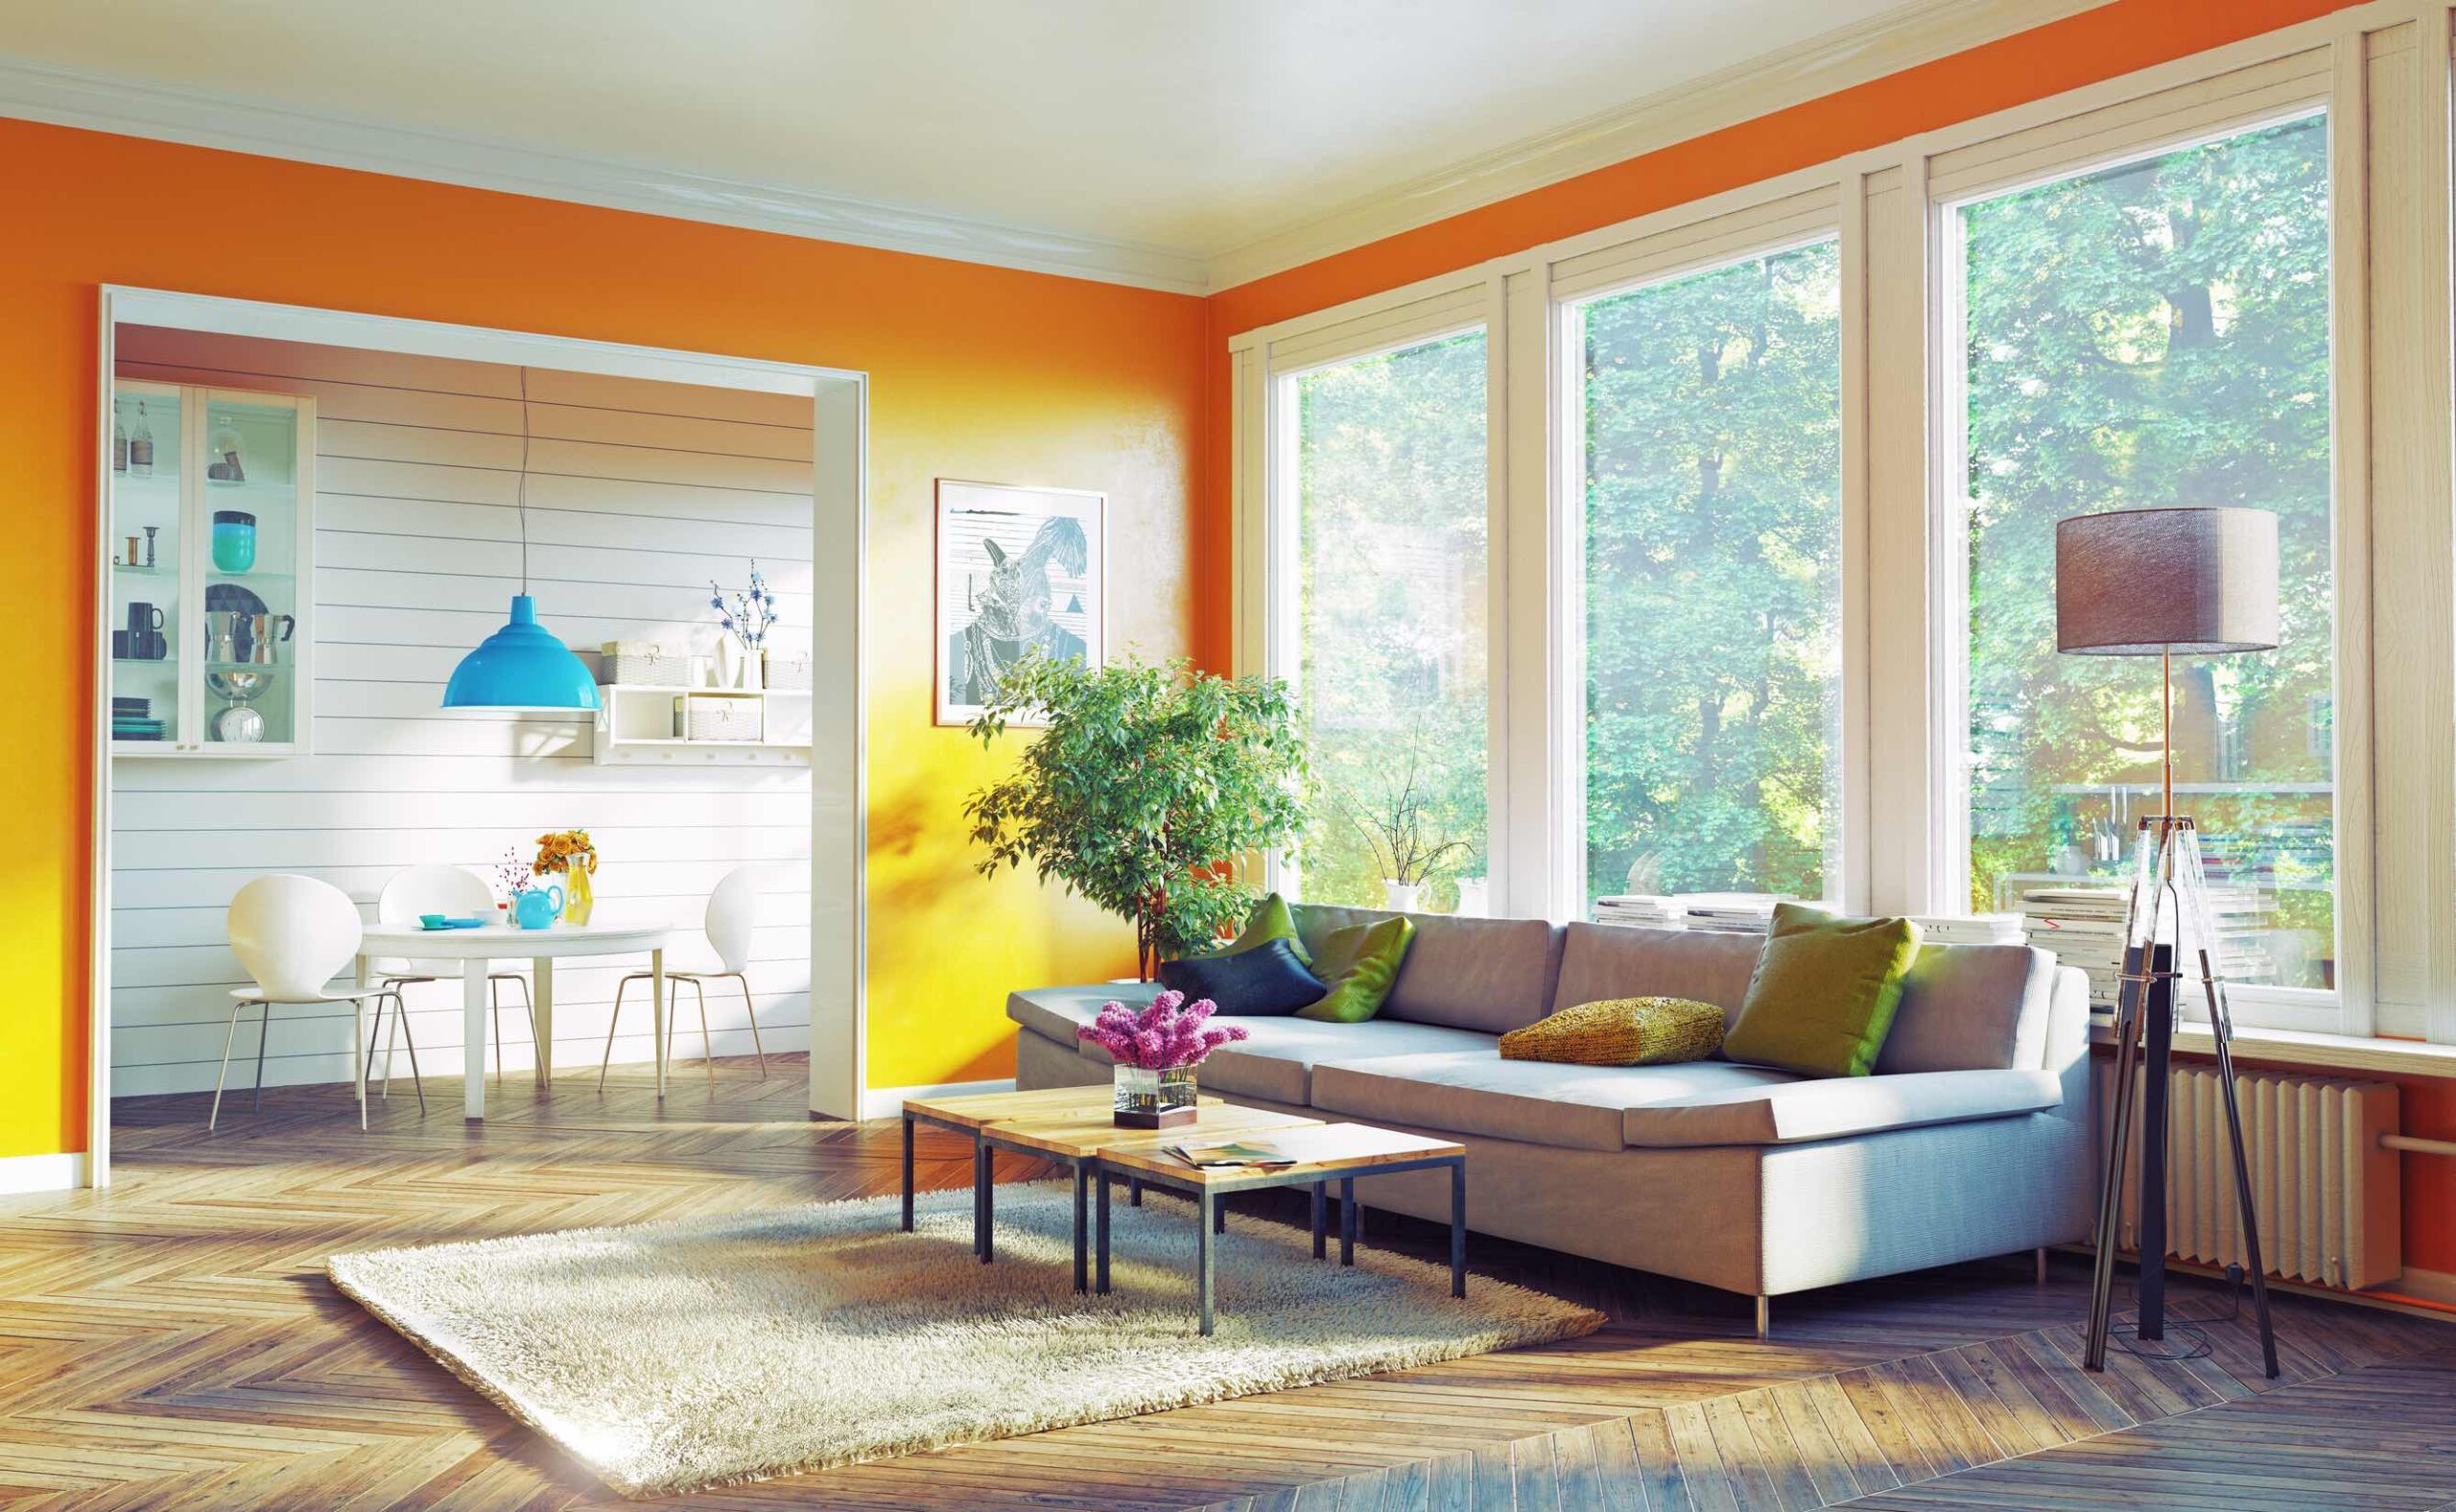 Top Benefits of Residential Window Tint in the Springfield, Missouri Area - Home Window tinting in Springfield, Missouri